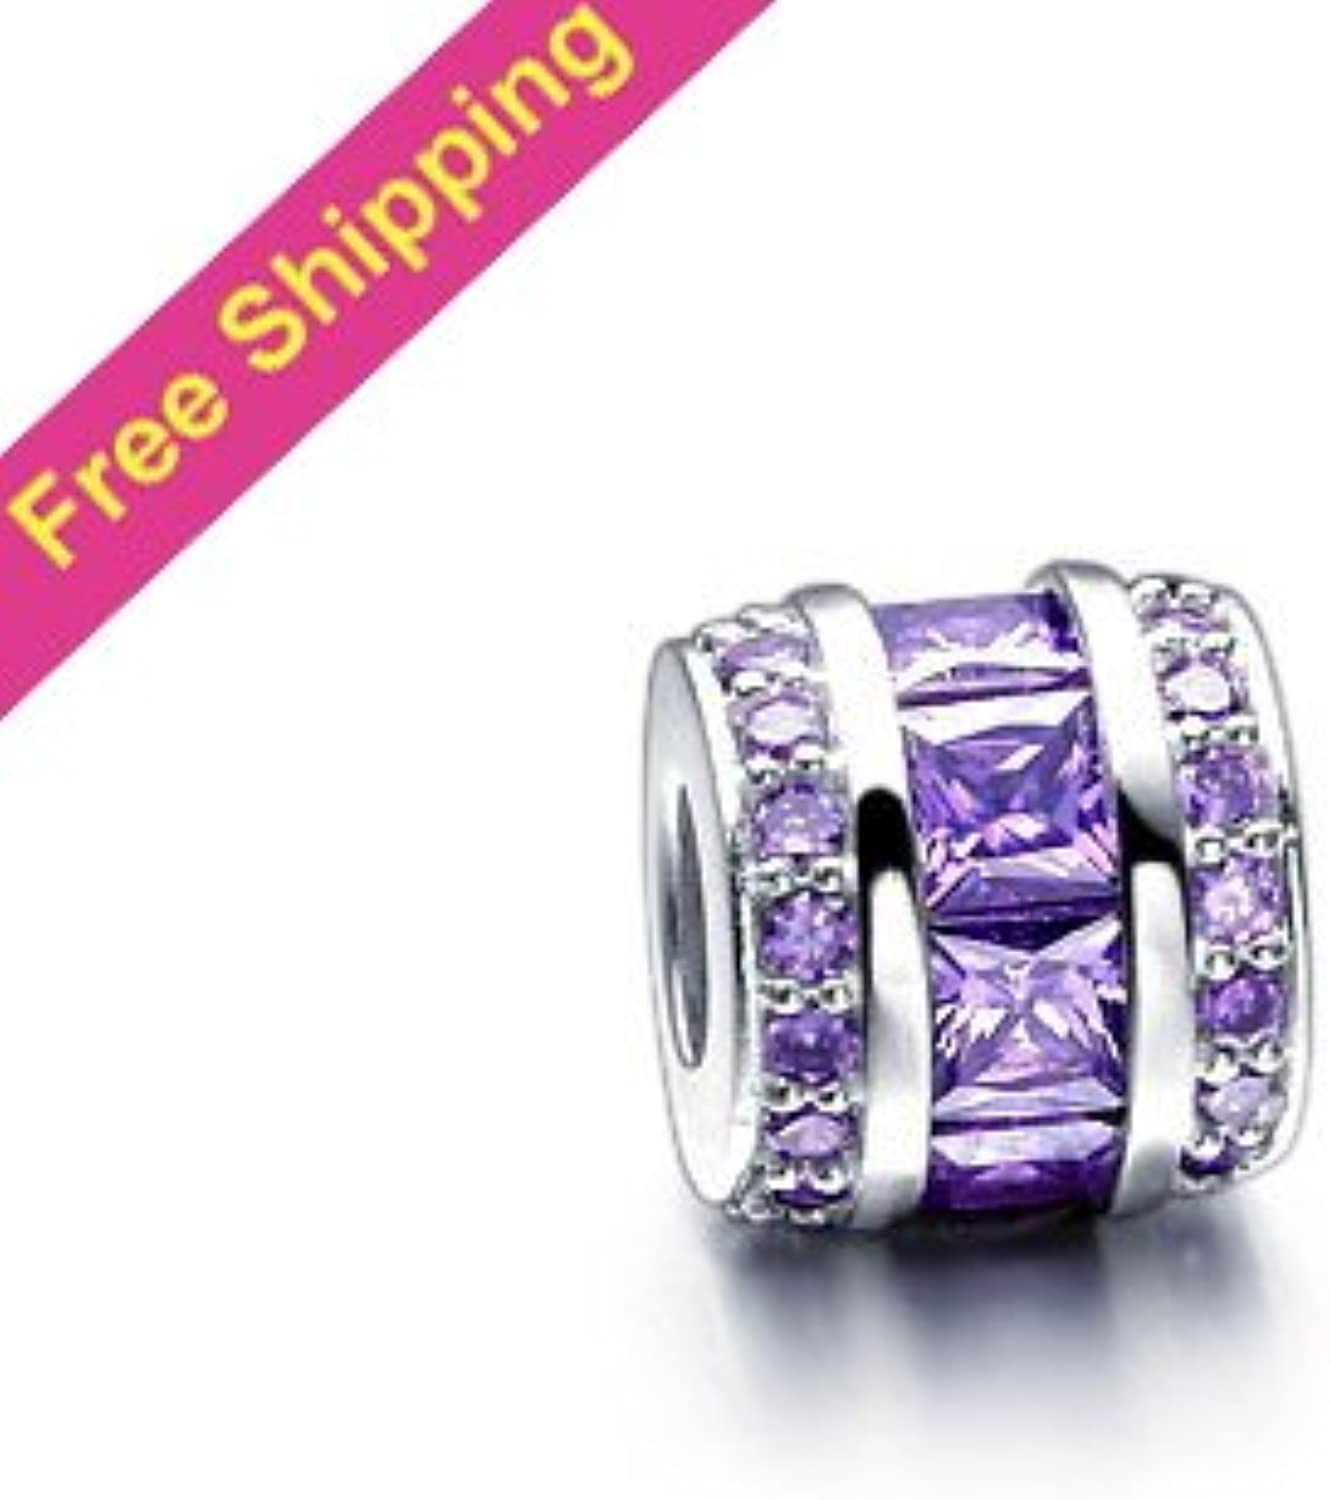 KDESIGN 925 Silver Drum Slide Charm Beads with Purple Crystal DIY Beads Fit European Thread Charm Bracelet XS056A